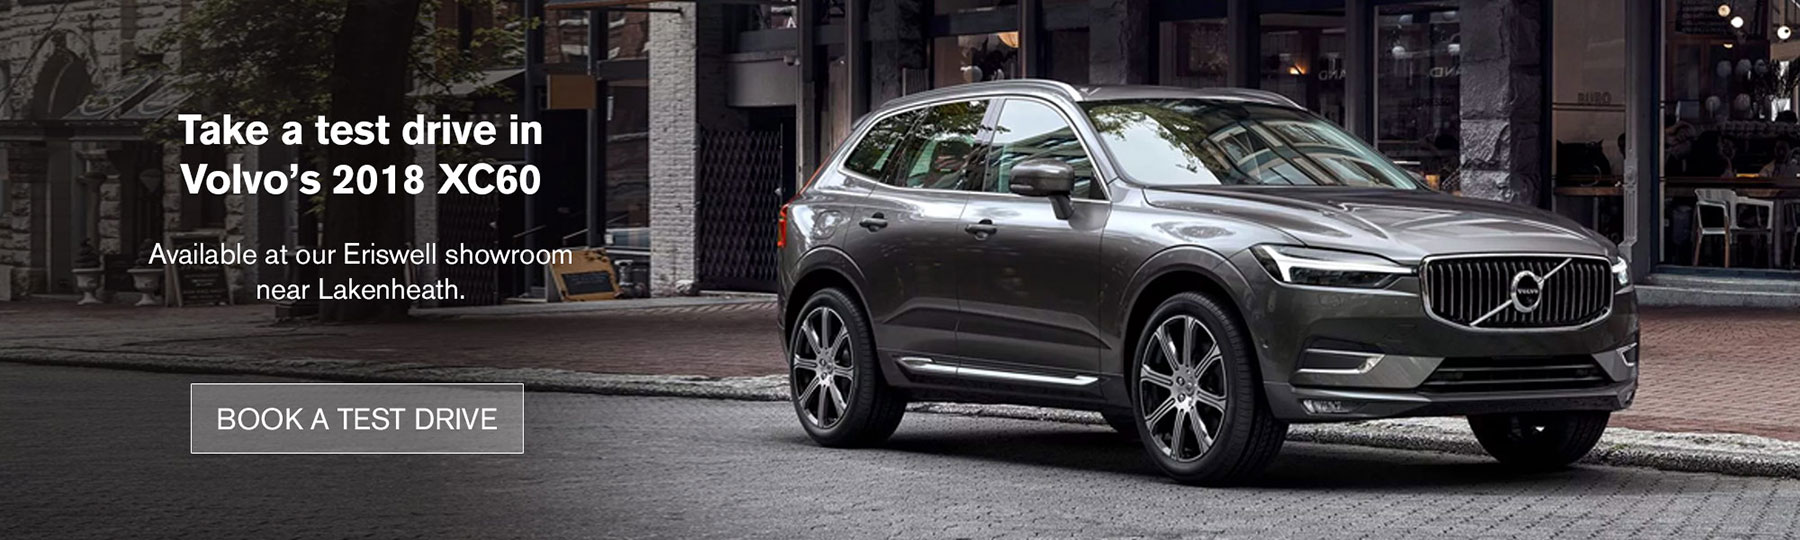 Test drive a Volvo XC60